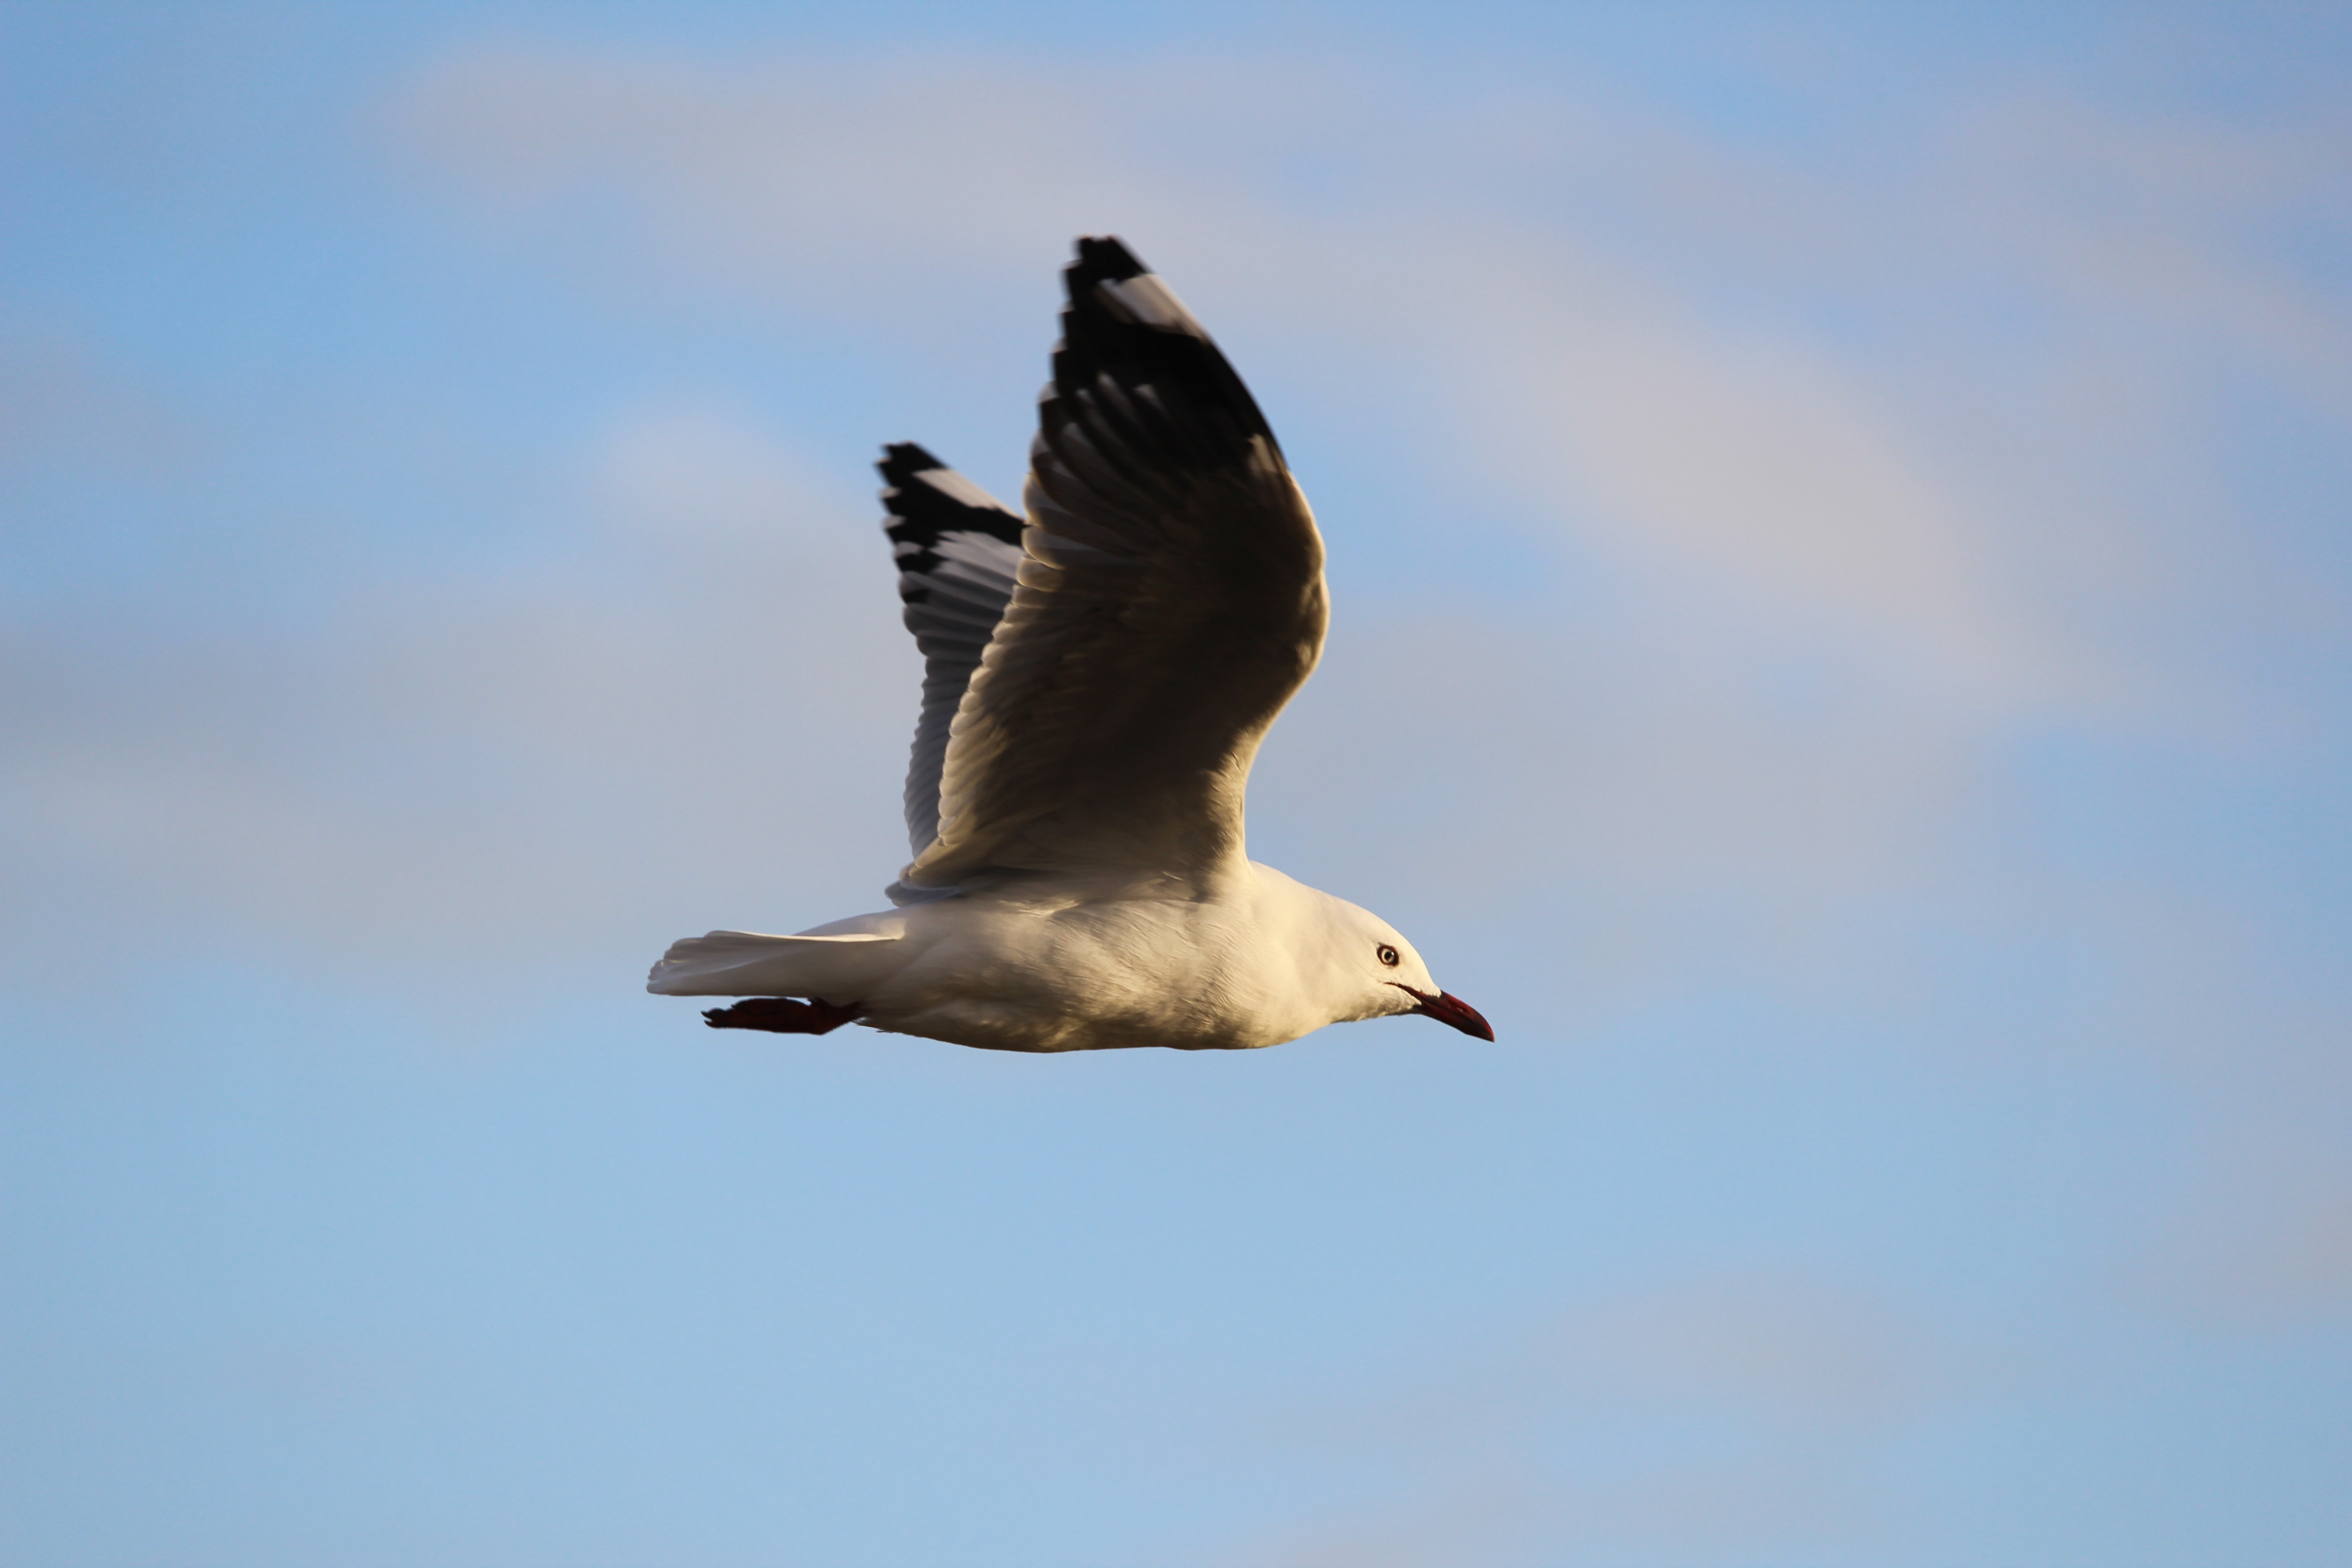 high-speed camera tilt-shift lens photography of white bird in flight